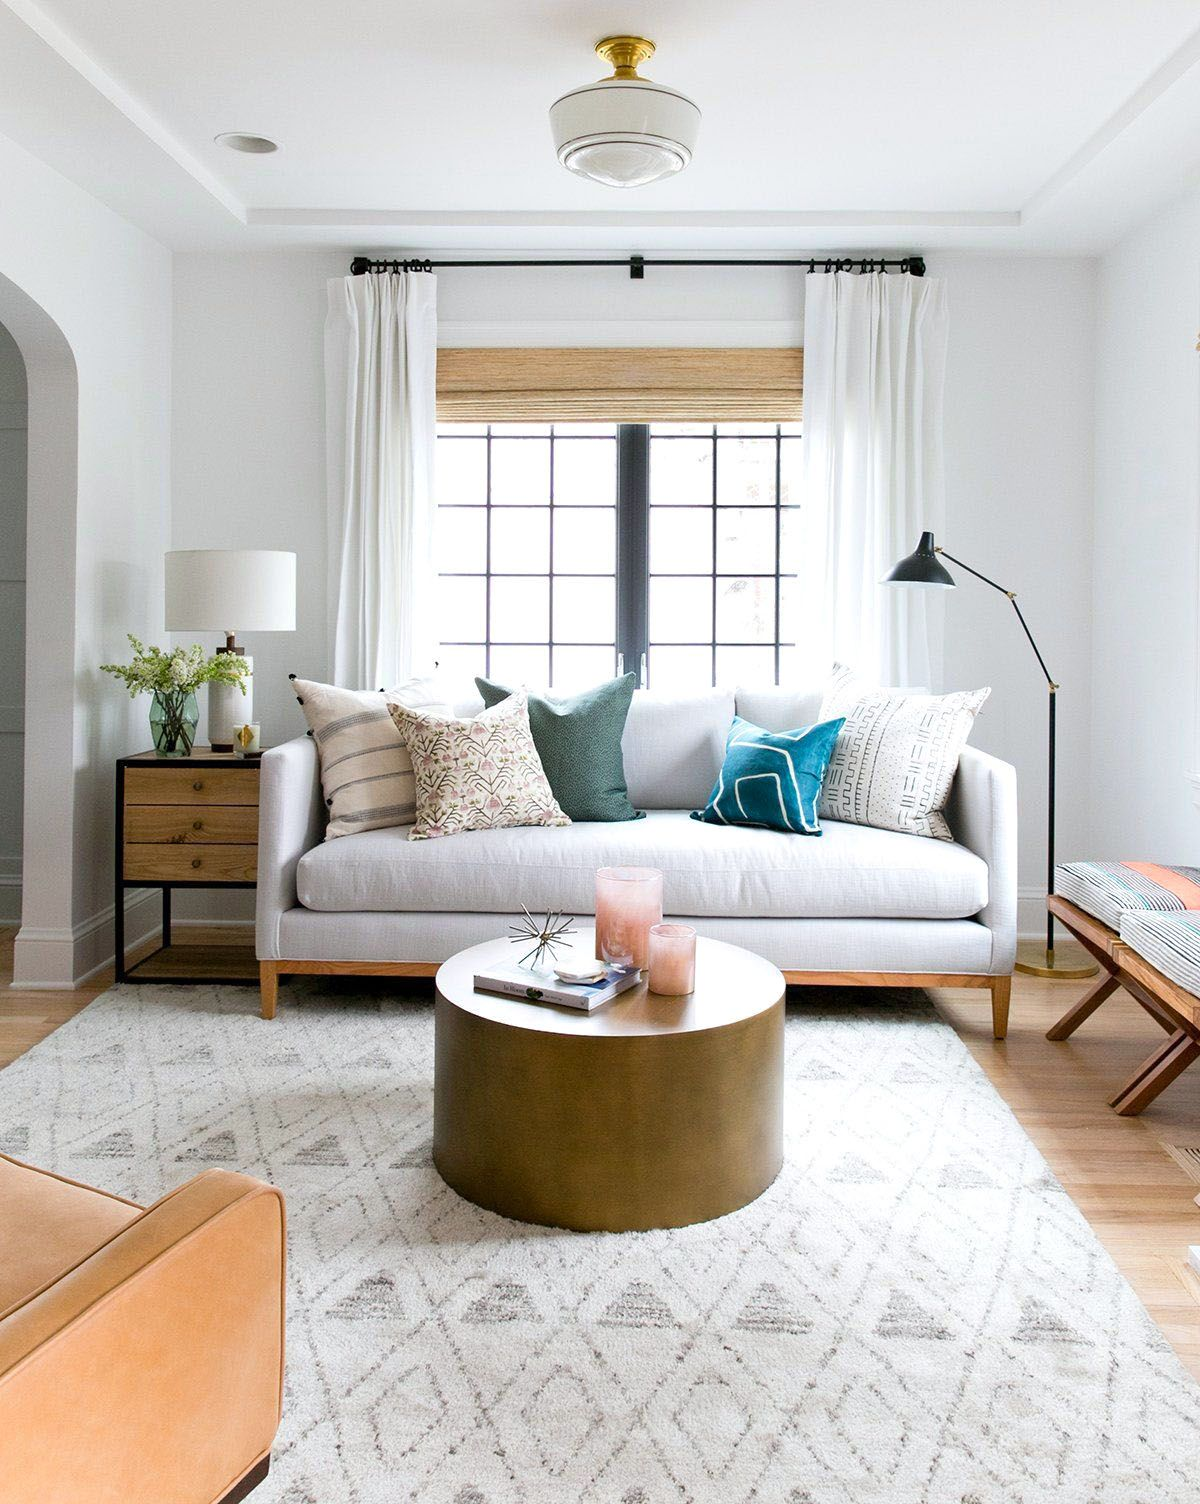 Top 8 Small Living Room Ideas That Will Maximize Your Home